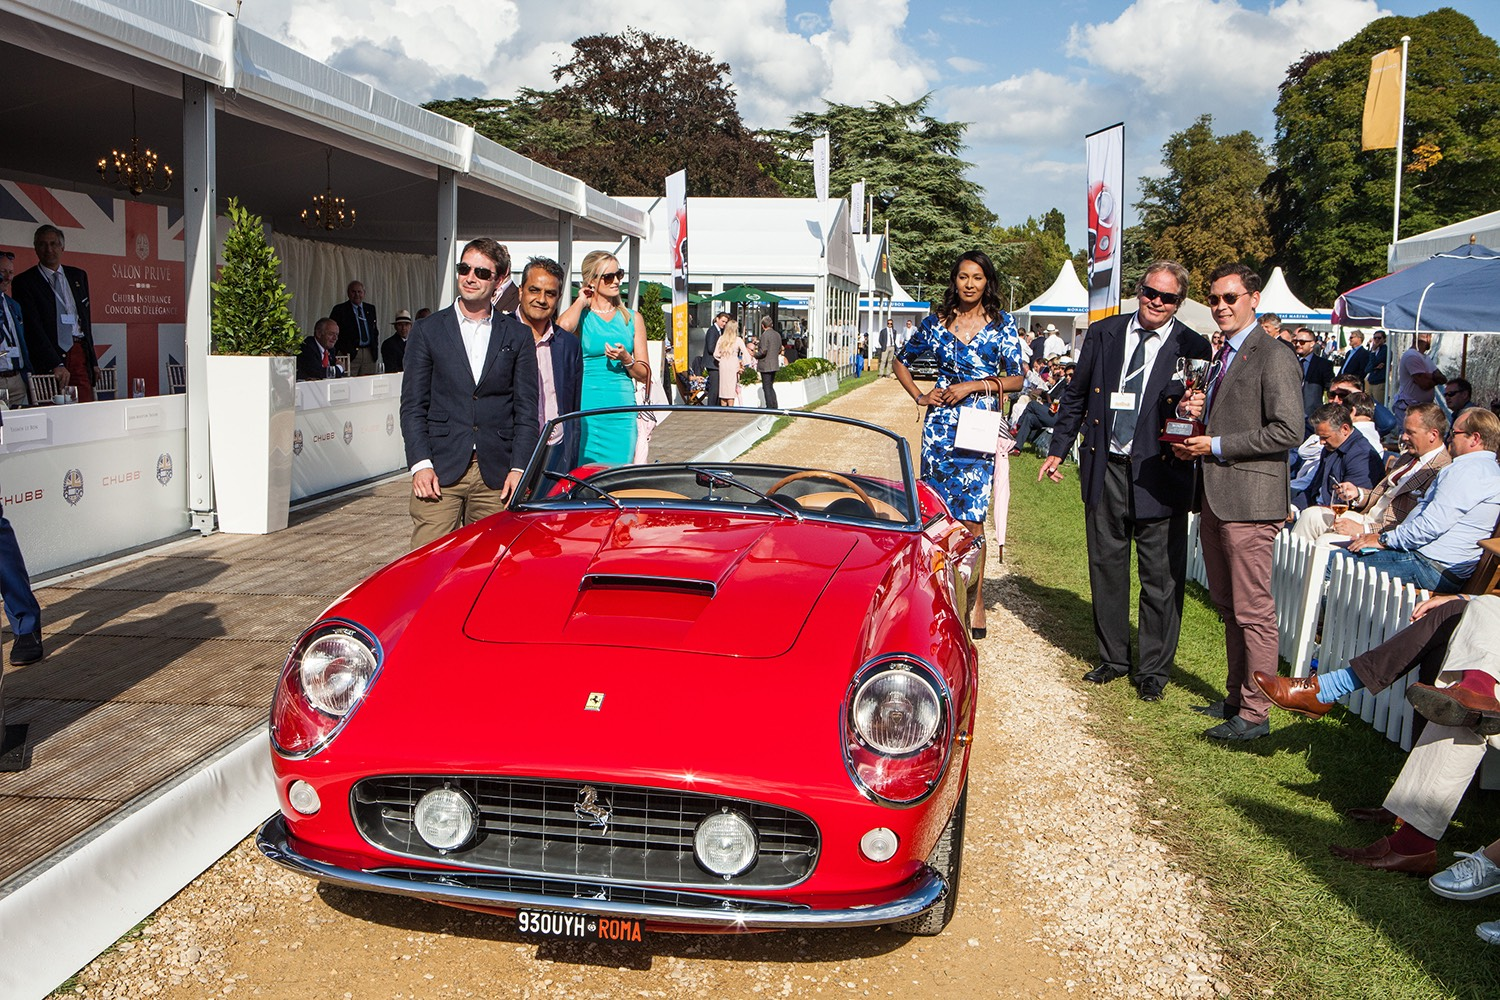 Salon Prive 2017